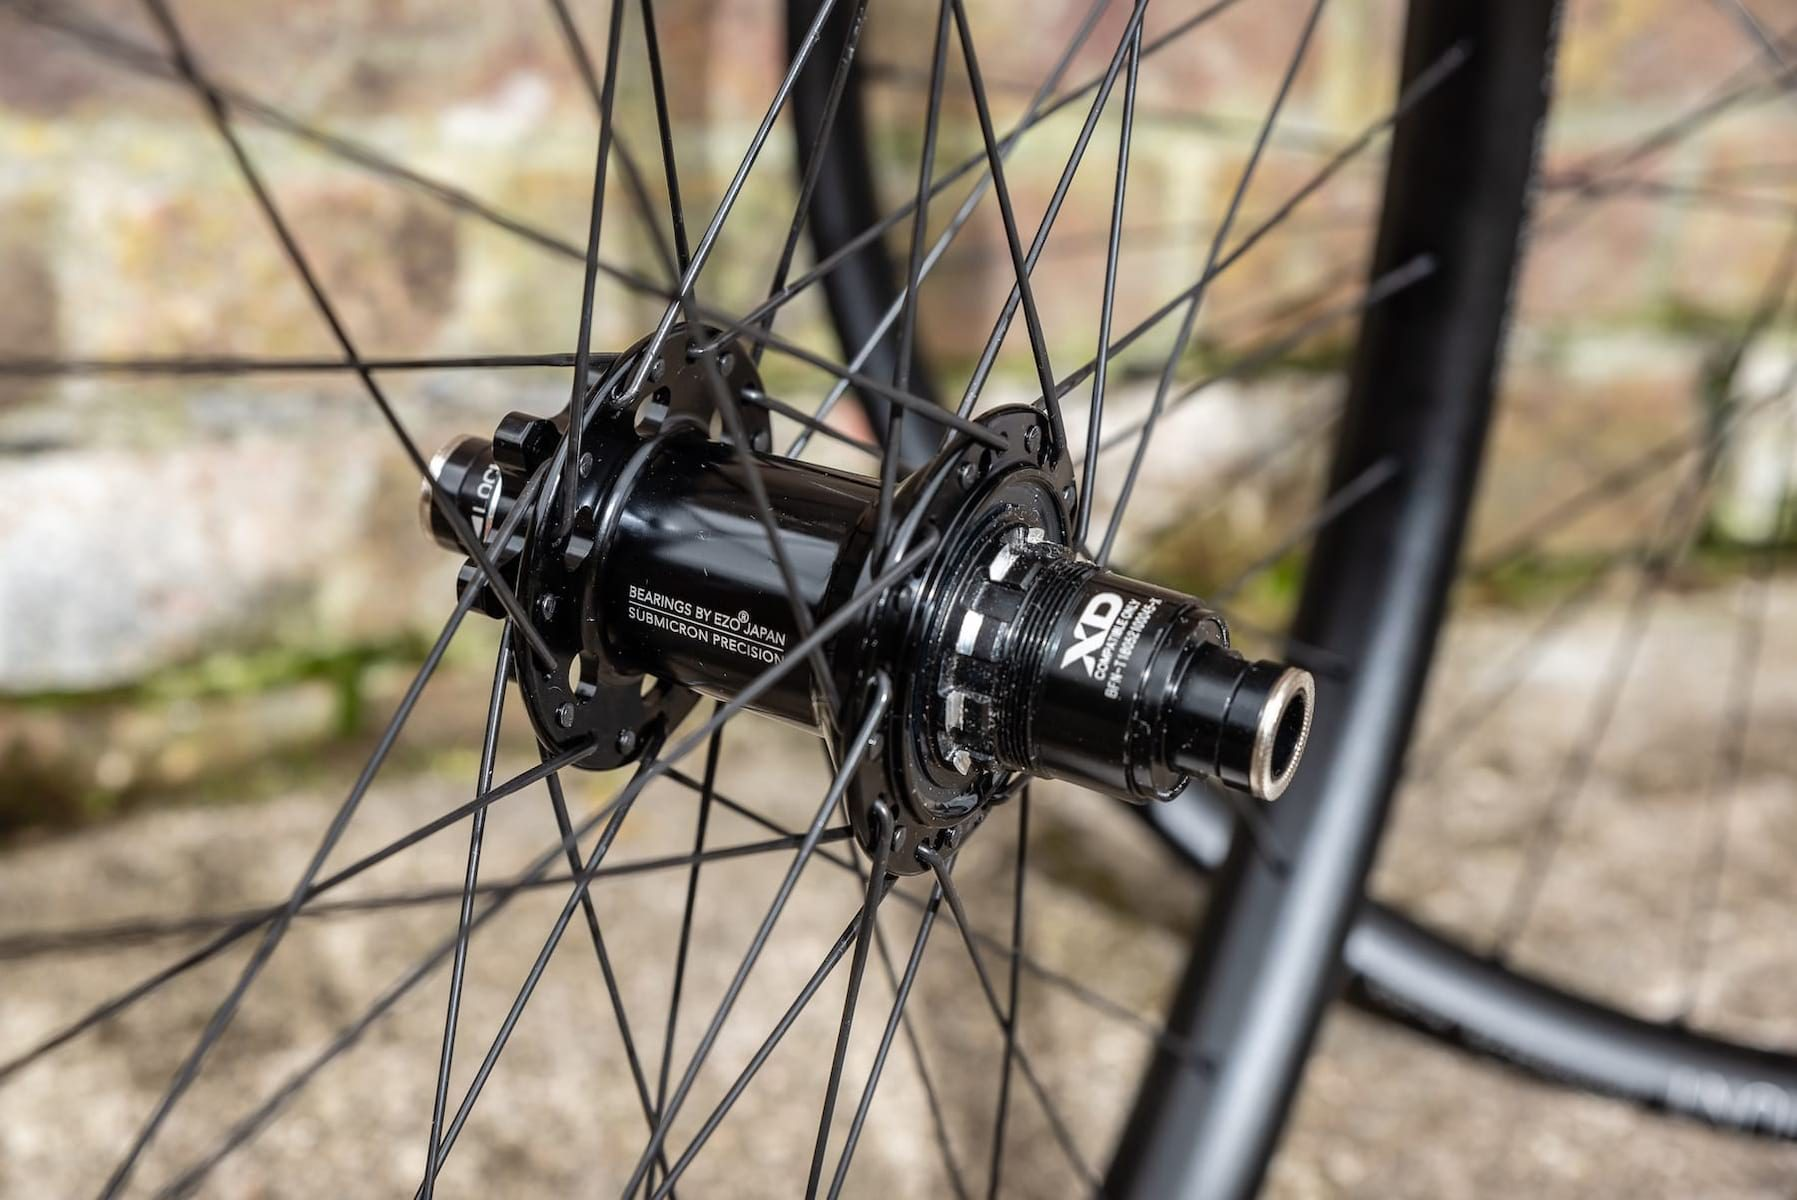 hunt enduro wheels sram xd freehub body